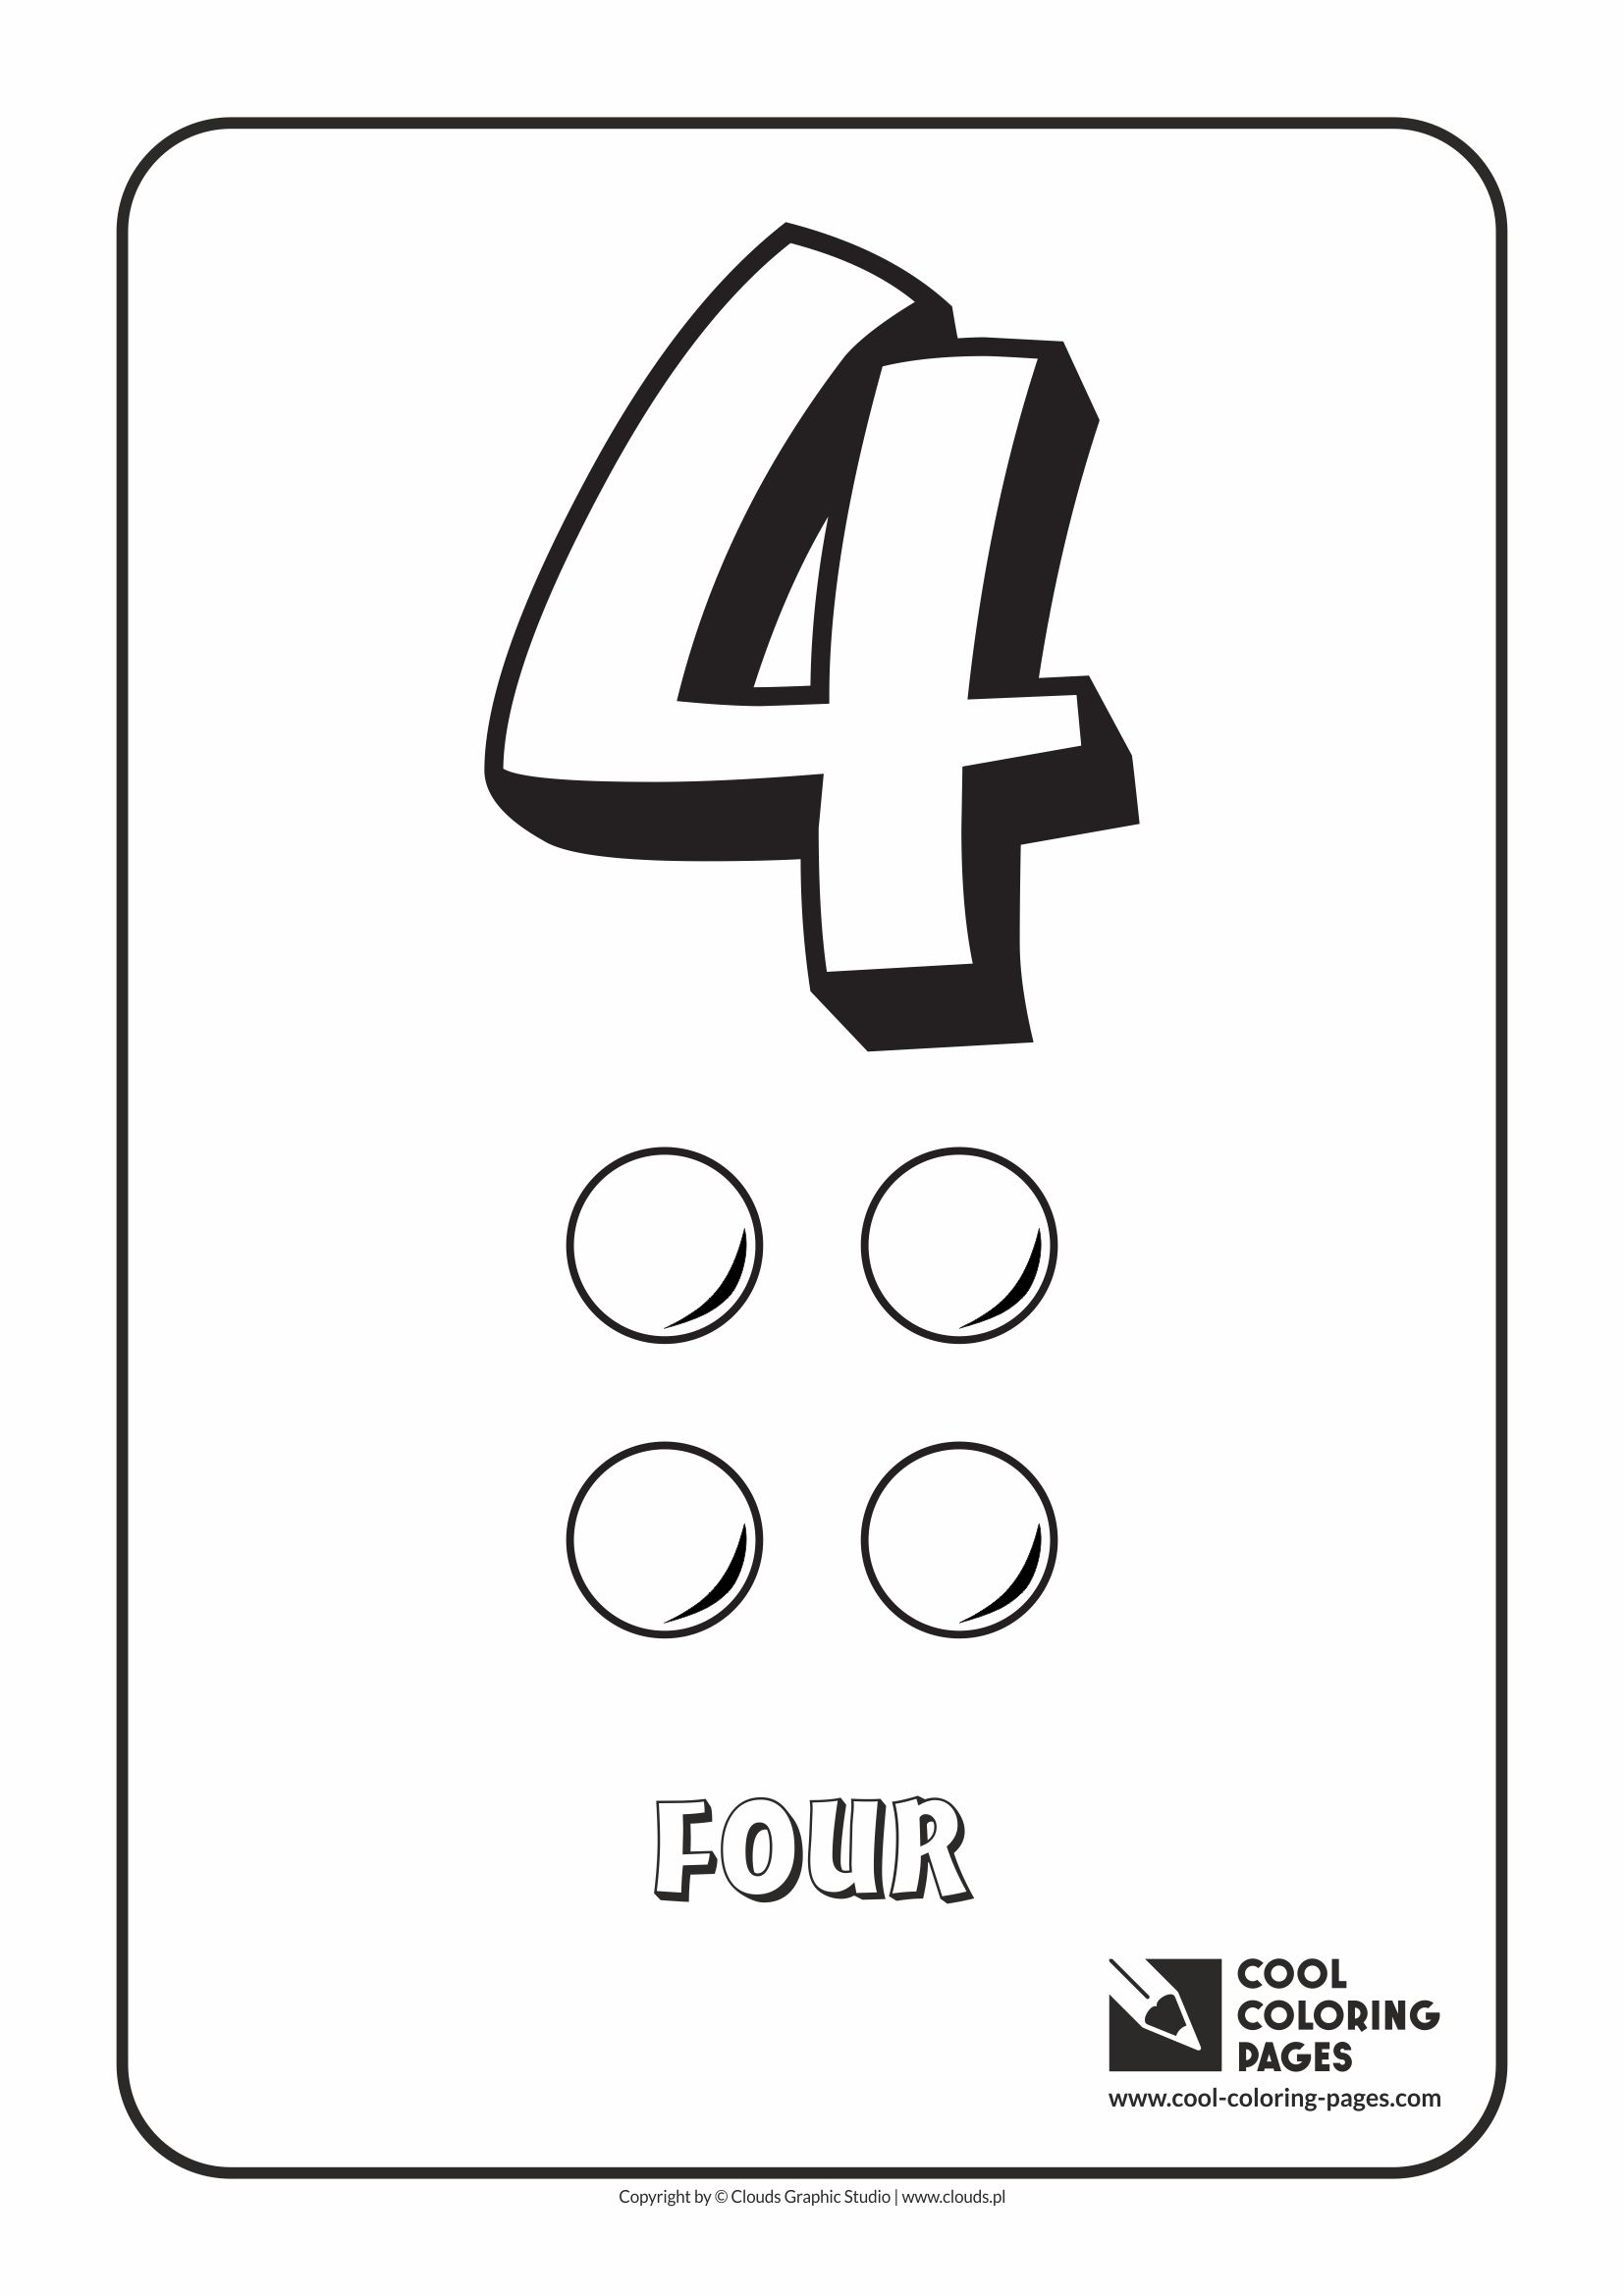 Cool Coloring Pages - Digits / Digit 4 / Coloring page with digit 4